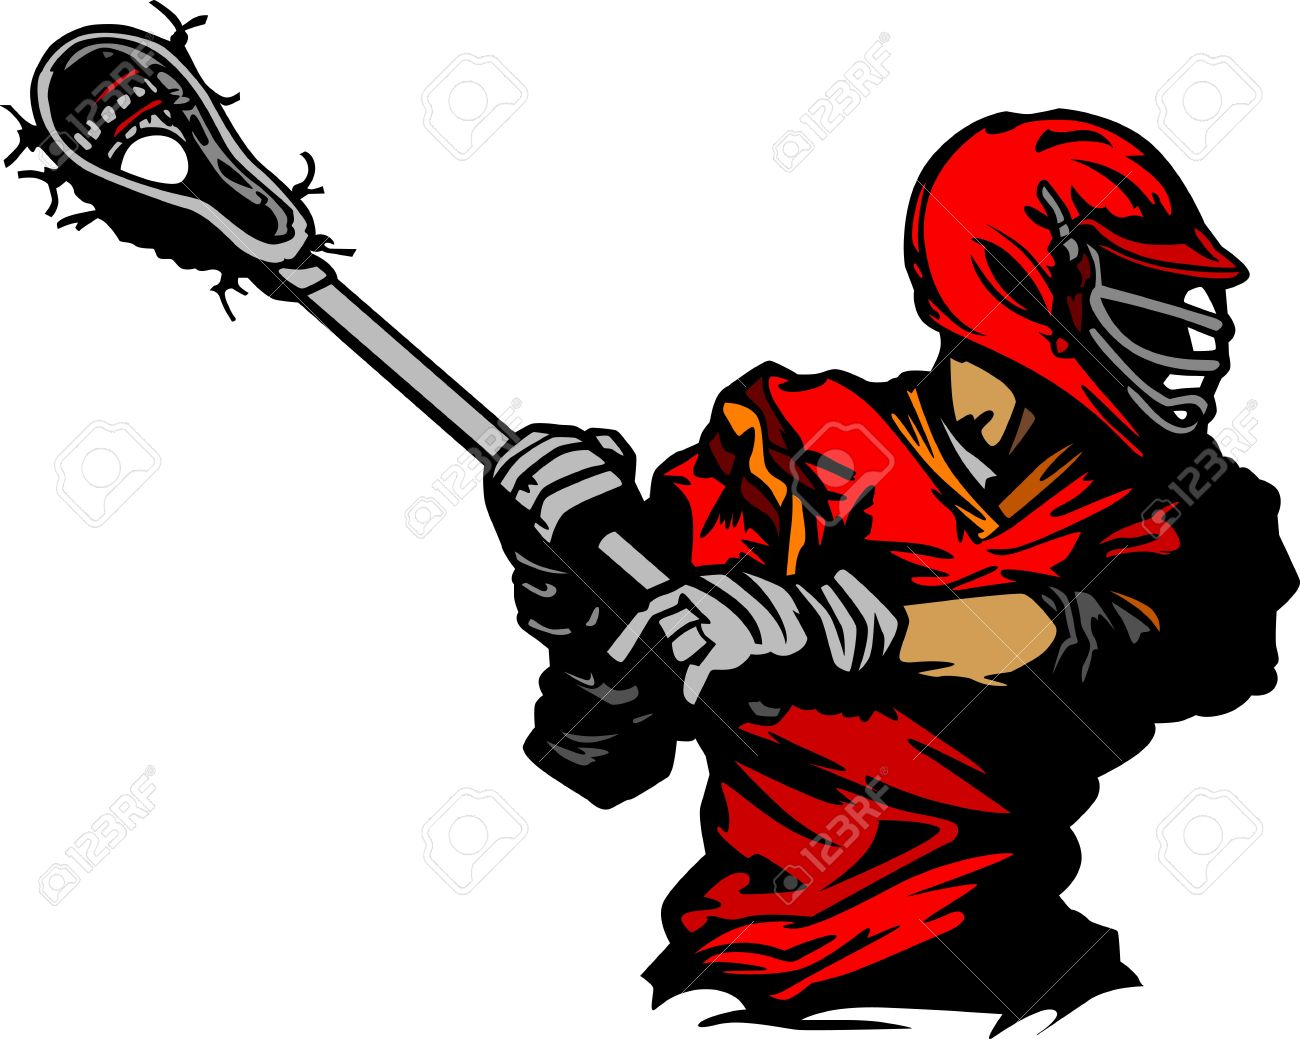 lacrosse player cradling ball illustration royalty free cliparts rh 123rf com Lacrosse Stick Drawing Clip Art of Lacrosse Equipment